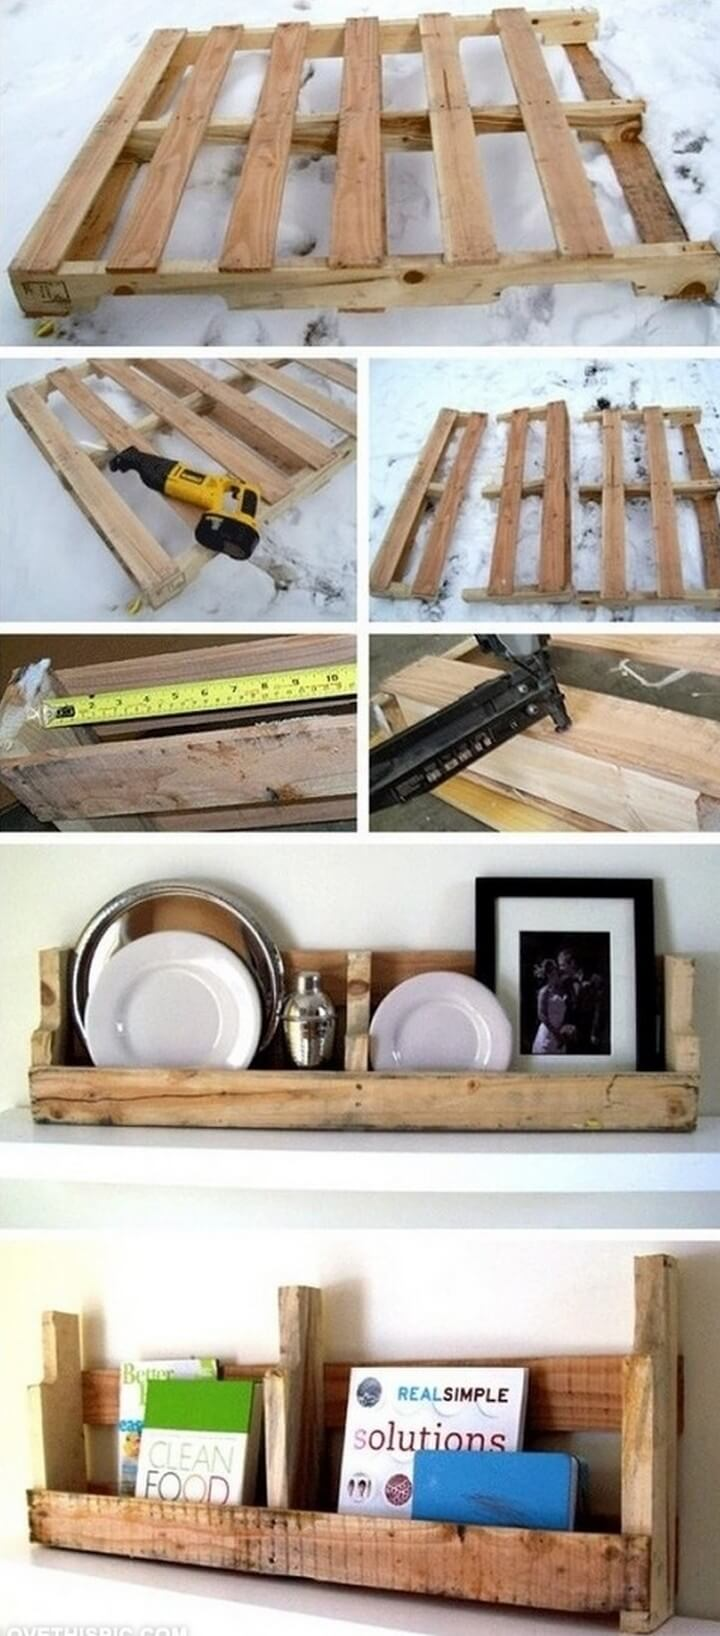 DIY Pallet Shelf For Storage Things, diy home decor crafts, diy home decor projects, diy home decor pinterest, modern diy home decor, diy home decor ideas living room, diy hacks home decor, quirky diy home decor, diy ideas for the home, diy hacks home decor, cheap diy projects for your home, diy ideas for the home, diy home projects for beginners, modern diy home decor, diy home decor pinterest, diy home decor ideas living room, diy decor ideas for bedroom, cheap diy projects for your home, diy home projects for beginners, diy hacks home decor, diy ideas for the home, diy home decor pinterest, modern diy home decor, diy home decor ideas living room, quirky diy home decor, diy home decor, diy home decor idea, ideas diy home decor, diy home decor craft, diy home decor project, diy home decor projects, crafts diy home decor, pinterest diy home decor, diy home decor dollar tree, easy diy home decor ideas, diy home decor ideas living room, rustic diy home decor, diy home decor ideas budget, diy home decor ideas on a budget, dollar tree diy home decor 2018, diy home decor craft ideas, diy home decor projects cheap, diy home decor christmas, top diy home decor blogs, budget diy home decor, diy home decor youtube, simple diy home decor, thrift store diy home decor, elegant diy home decor, diy home decor websites, pinterest diy home decor projects, inexpensive diy home decor, diy home decor painting, hobby lobby diy home decor, easy cheap diy home decor, diy home decor crafts pinterest, diy home decor tutorials, pinterest diy home decor ideas, michaels diy home decor, vintage diy home decor, best diy home decor youtube channels, spring diy home decor, diy home decor instagram, diy home decor wall hangings, diy home decor christmas gifts, diy home decor flower vase, diy home decor ideas for small homes, diy home decor wine bottles, low cost diy home decor, diy home decor mason jars, diy home decor books, diy home decor living room, diy home decor craft projects, diy home decor canvas art, unique diy home decor ideas, diy home decor magazine, 33 cool diy home decor ideas, affordable diy home decor, quirky diy home decor, step by step diy home decor, diy home decor from recycled materials, diy home decor for apartments, simple diy home decor ideas, disney diy home decor, valentine's day diy home decor, diy home decor ideas kitchen, diy home decor recycled, simple diy home decor projects, diy home decor bathroom, diy home decor ideas india, easy diy home decor pinterest, how to diy home decor, arts and crafts diy home decor, diy home decor with cardboard, diy home decor ideas bathroom, diy home decor projects on a budget, 21 magical and easy diy home decor ideas, diy home decor wall art, diy home decor with household items, creative diy home decor, easy diy home decor crafts, dollar tree diy home decor ideas, beautiful diy home decor, buzzfeed diy home decor, diy home decor ideas for diwali, diy home decor malaysia, inexpensive diy home decor ideas, diy home decor ideas with pallets, indian diy home decor blog, diy home decor with glass bottles, diy home decor crafts blog, diy home decor ideas for christmas, diy home decor ideas from waste, diy home decor ideas videos, diy home decor for diwali, diy home decor online, 19 awesome diy home decor, diy home decor for small spaces, diy home decor accessories, diy home decor with hot glue gun, diy home decor paper crafts, diy home decor indian style, diy home decor halloween, creative diy home decor ideas, diy home decor kitchen, pinterest diy home decor on a budget, diy home decor organization, diy home decor ideas 2018, pinterest diy home decor gifts, diy home decor subscription box, diy home decor outdoor, diy home decor south africa, diy home decor 2016, diy home decor out of waste, diy home decor on the cheap, diy home decor ideas youtube, diy home decor using household items, diy home decor maybaby, diy home decor craft kit, diy home decor and organization, diy home decor using cans, diy home decor on a budget pinterest, diy home decor bloggers, diy home decor using nature, diy home decor small apartment, diy home decor using branches, diy home decor minimalist, diy home decor tv shows, instagram diy home decor, diytomake.com